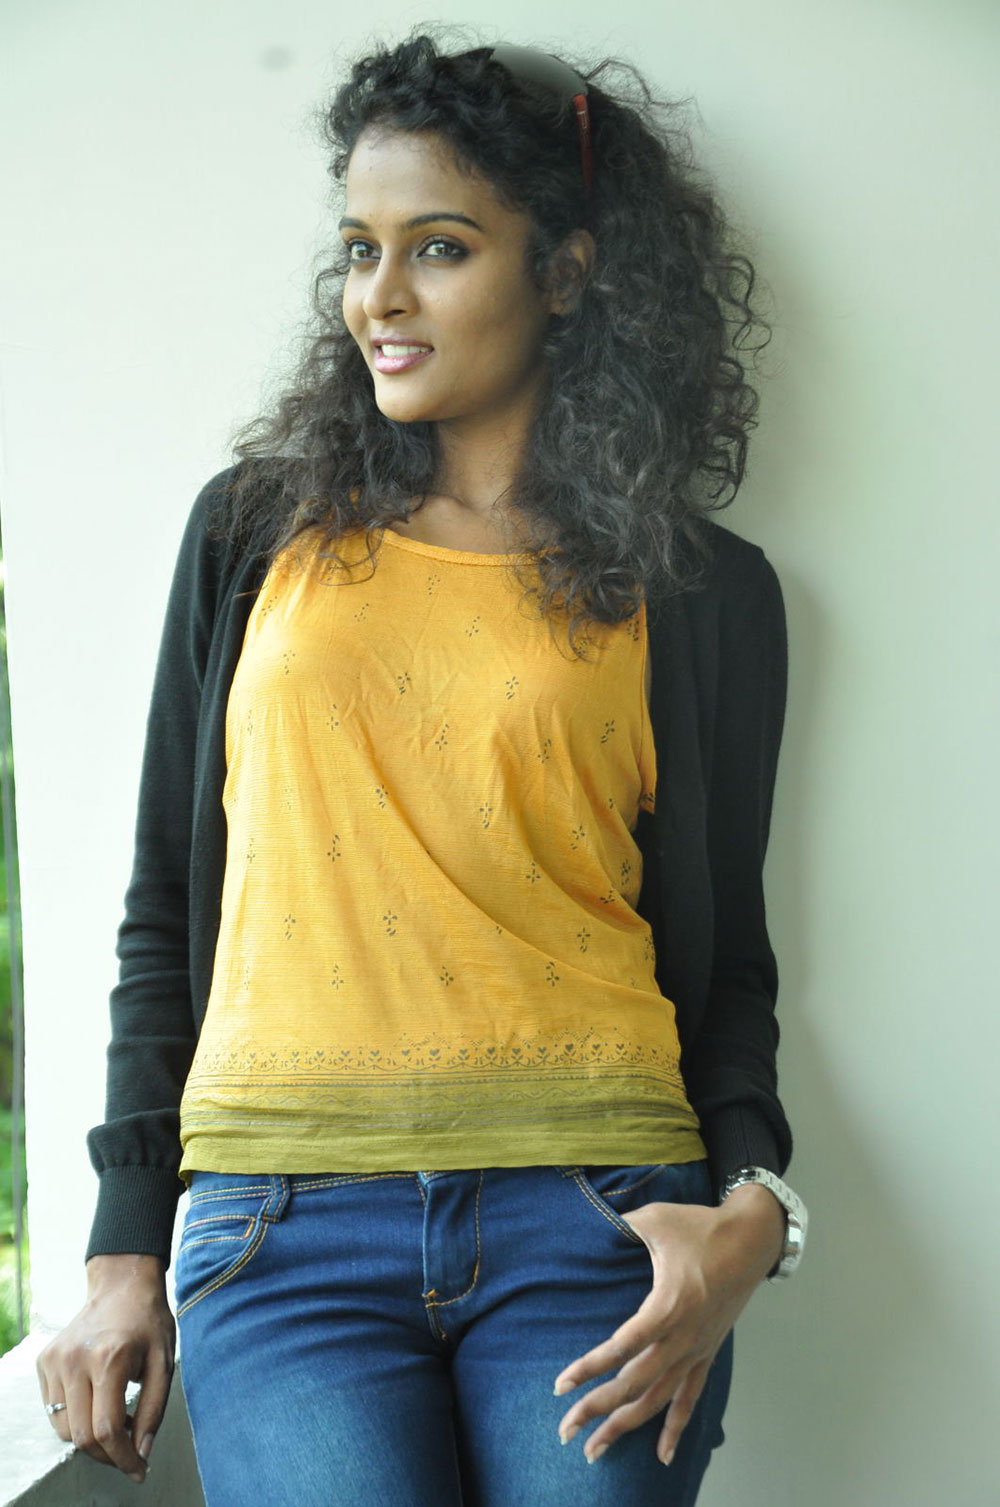 cute and confident Sonia deepthi latest photos gallery